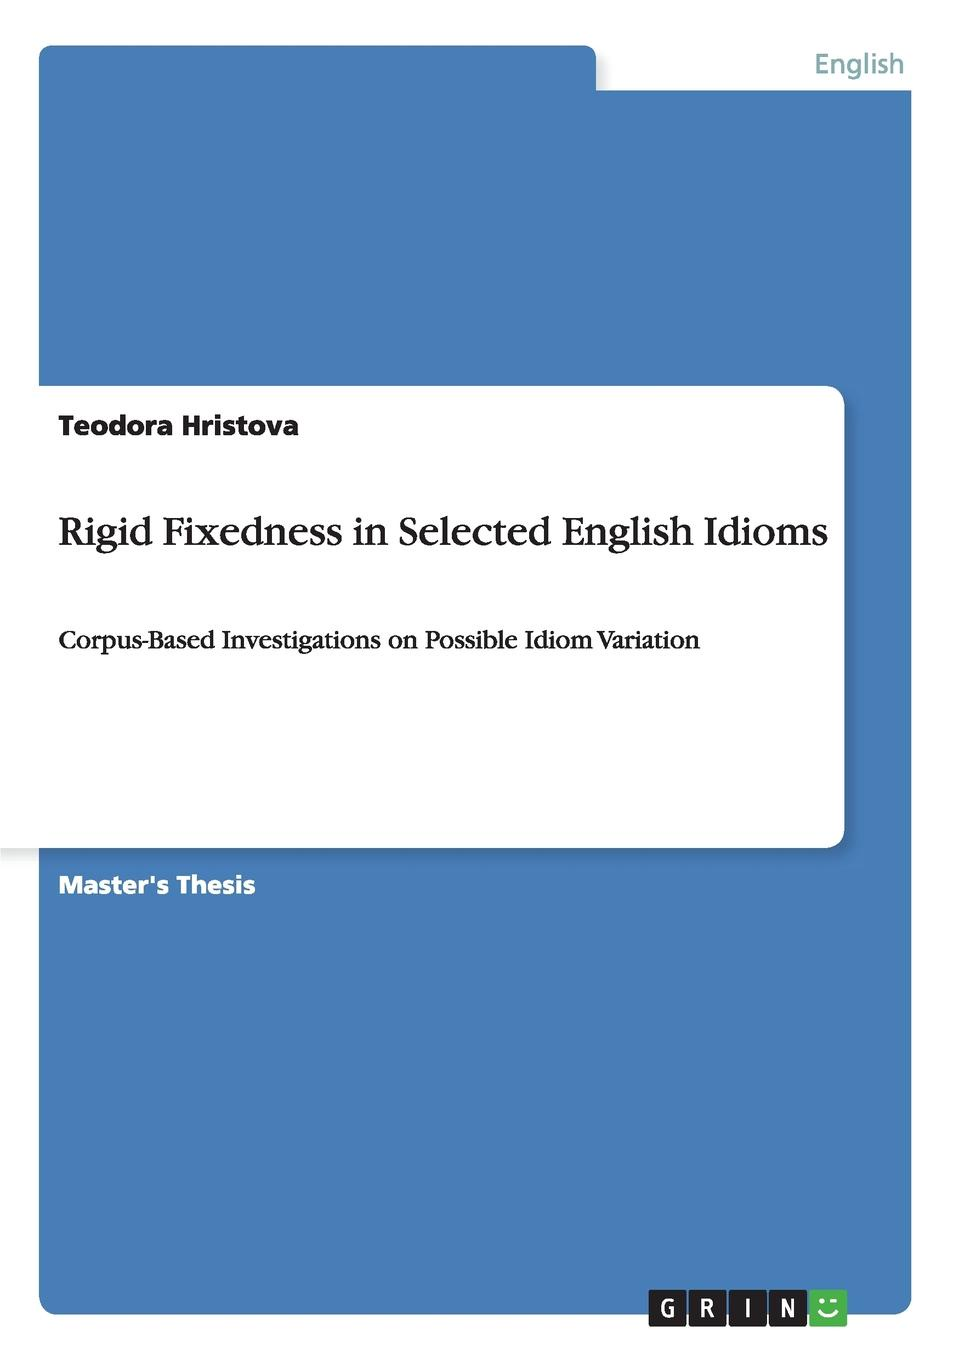 Teodora Hristova Rigid Fixedness in Selected English Idioms quiet as a mouse and other animal idioms